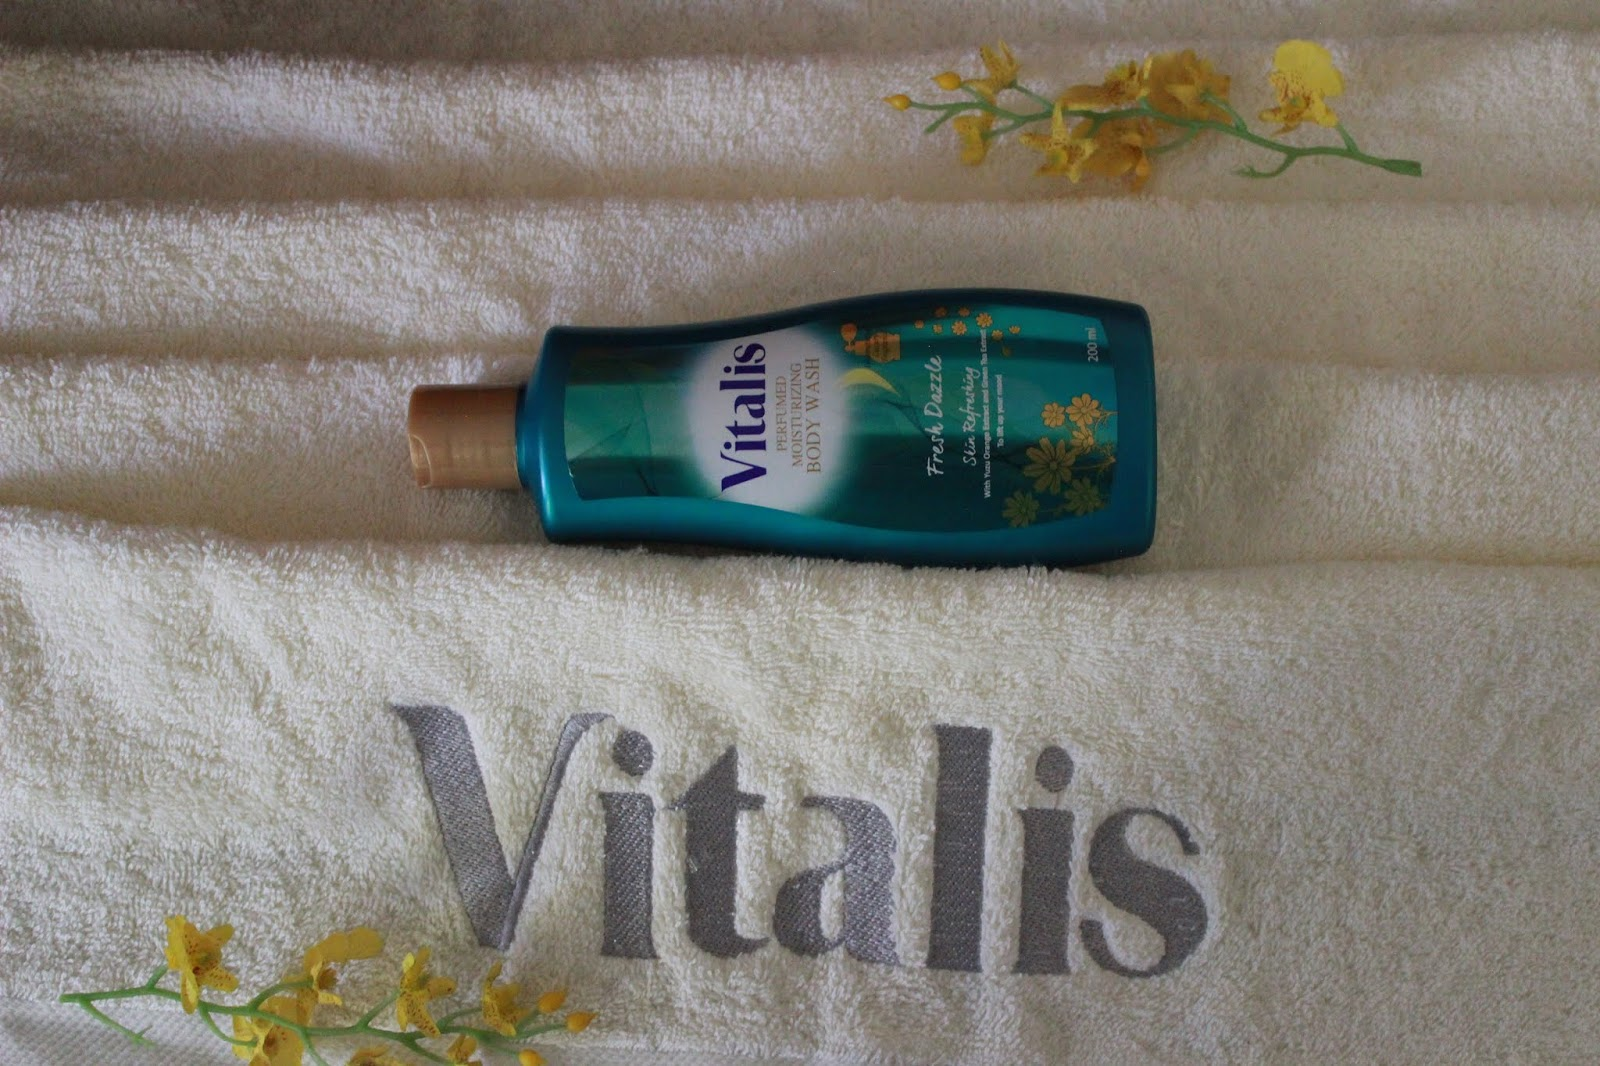 Vitalis Body Wash Fresh Dazzle